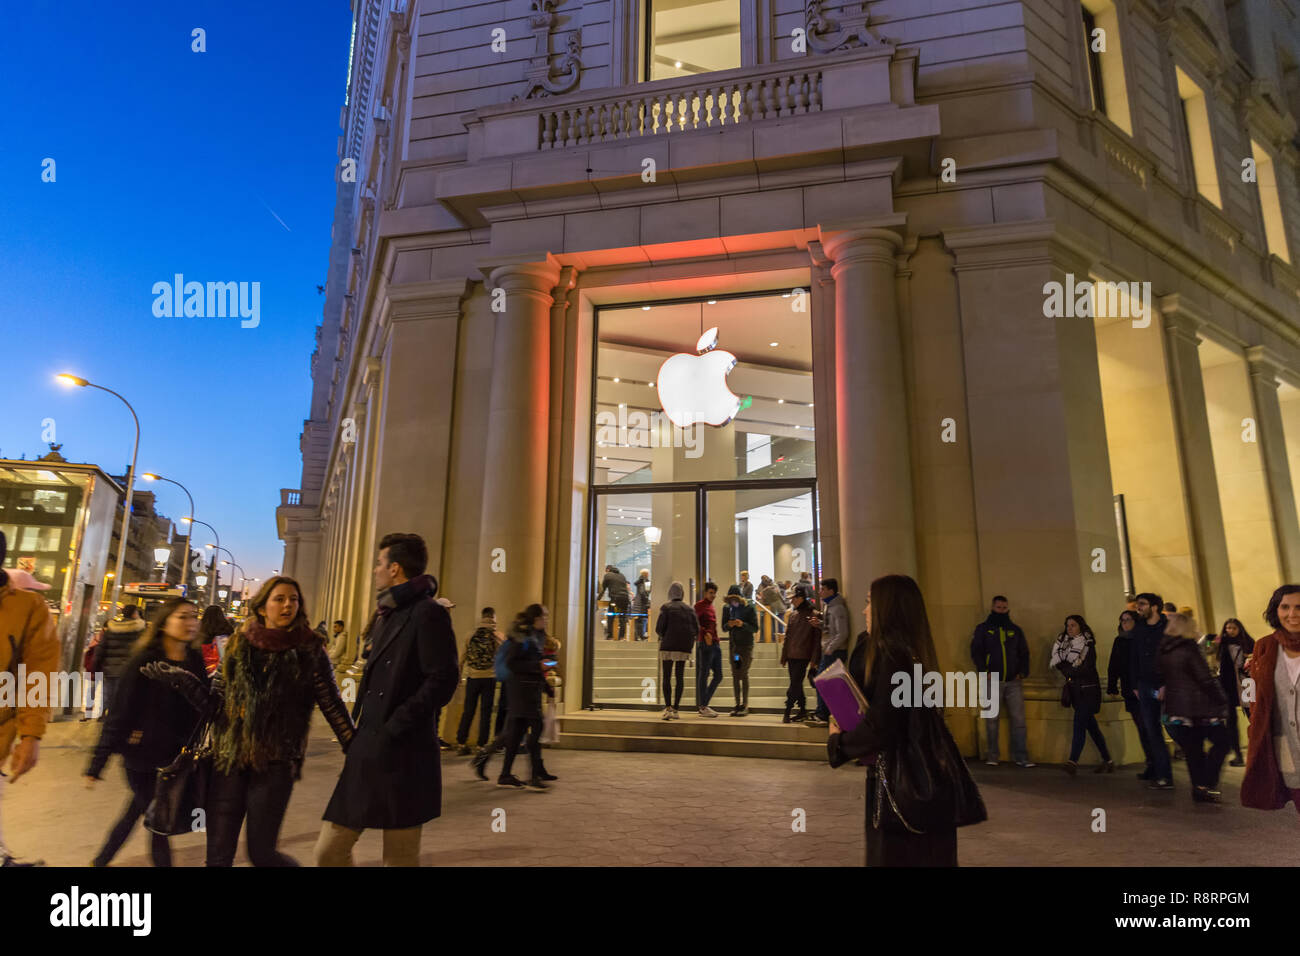 Barcelona, Spain - Dec 10th 2017 - People walking in front of the Apple Store in Barcelona in a cold weather night in Spain - Stock Image